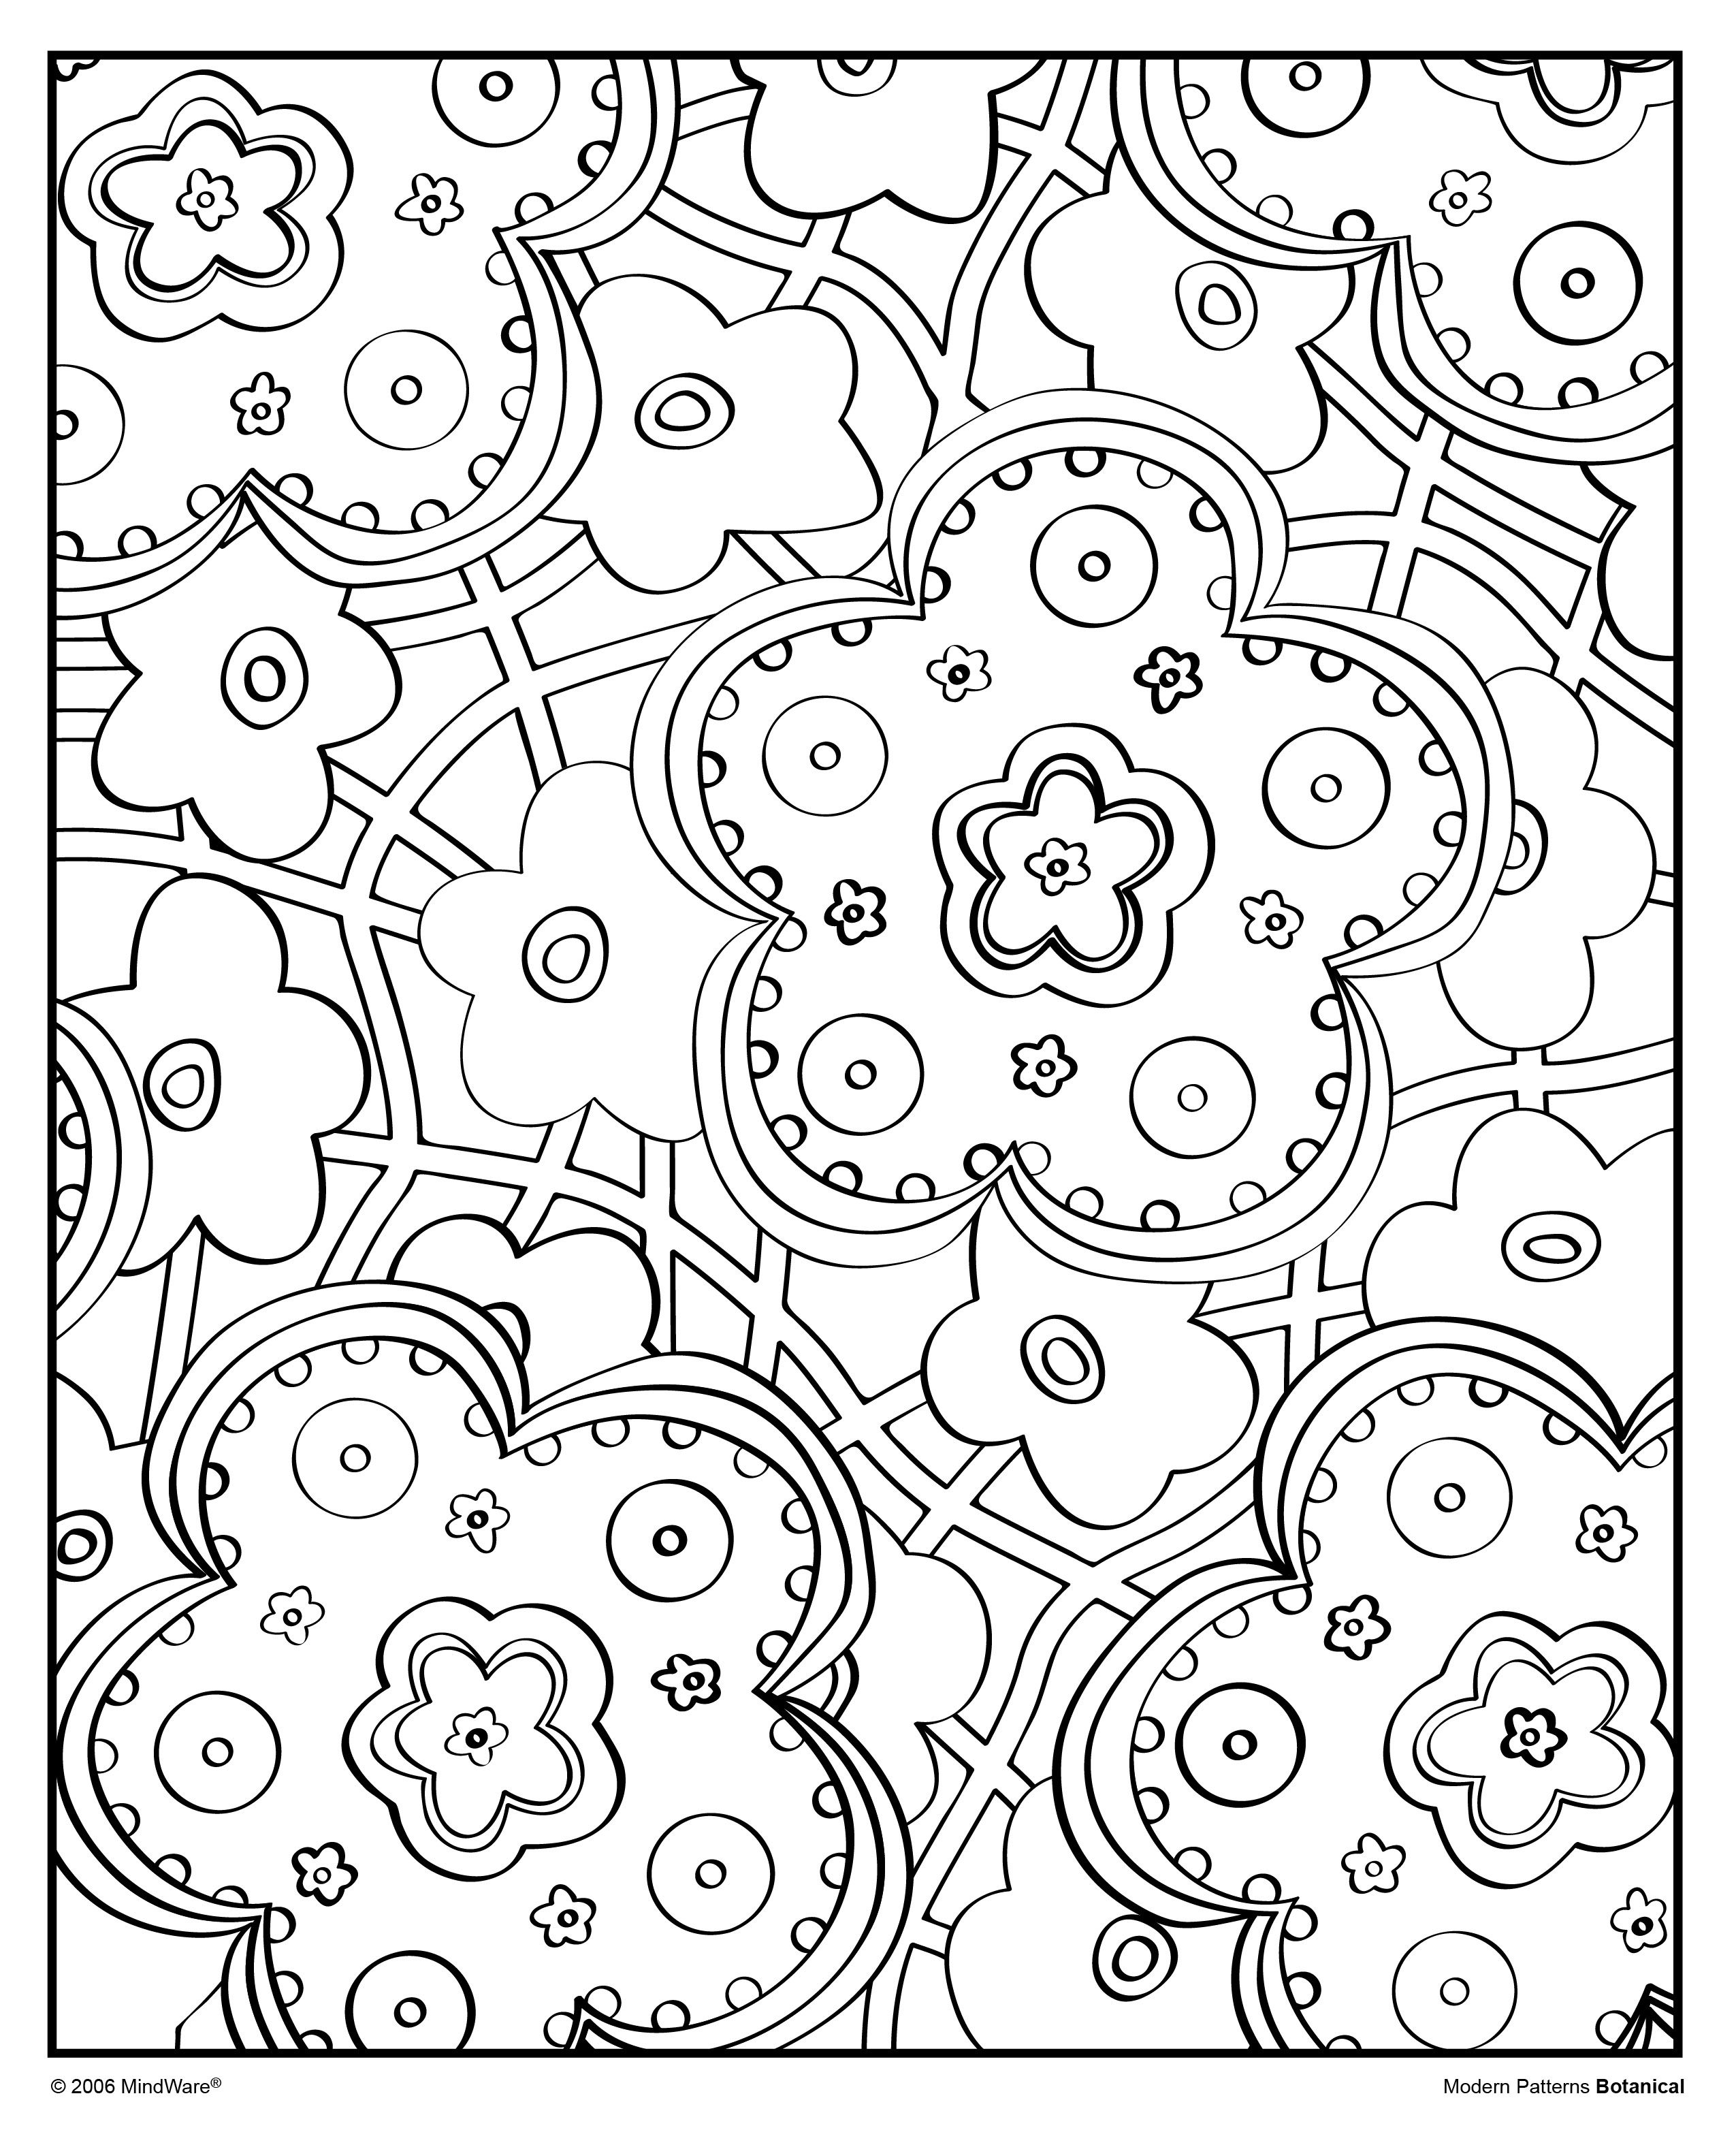 Grab your markers or colored pencils and decorate this groovy image ...